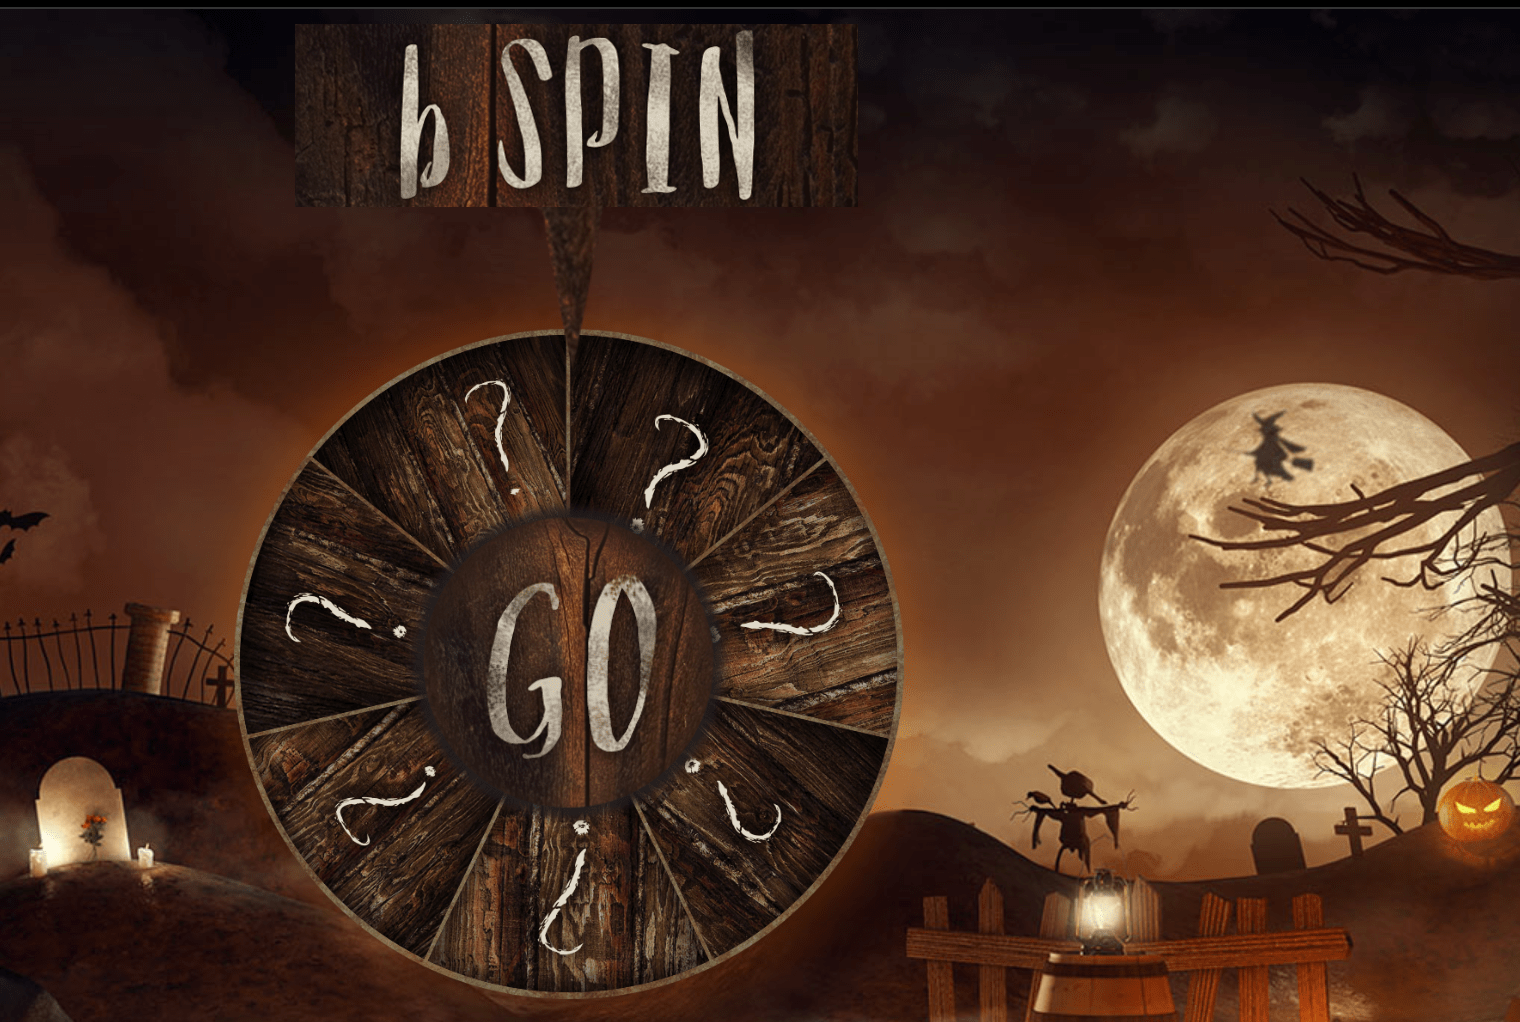 Bspin Bwin